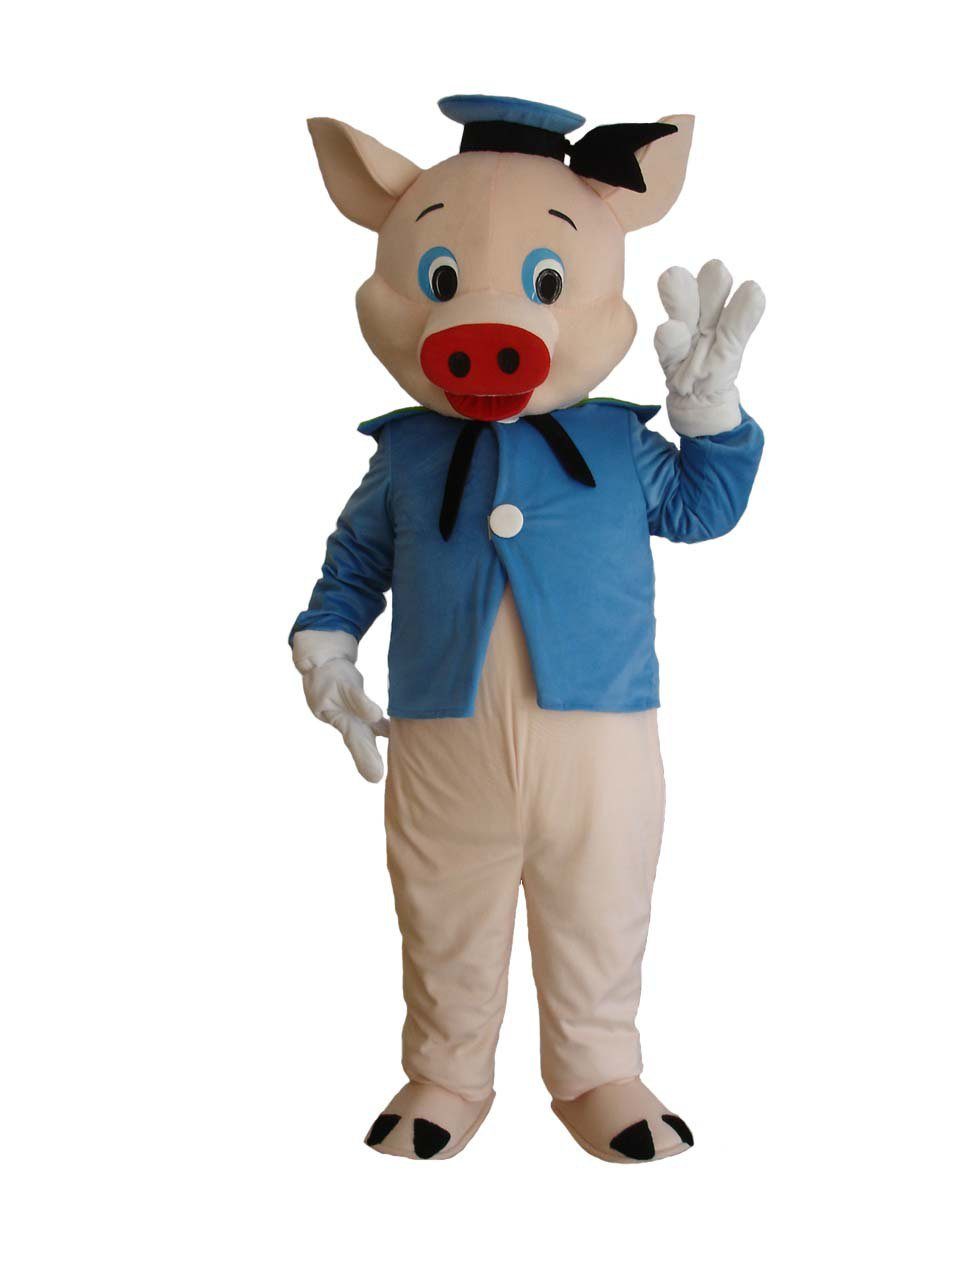 Manufacturers Animal Model Clothing Cartoon Costumes Cartoon Doll Clothing Doll Clothing Dr. Pig Mascot Costume